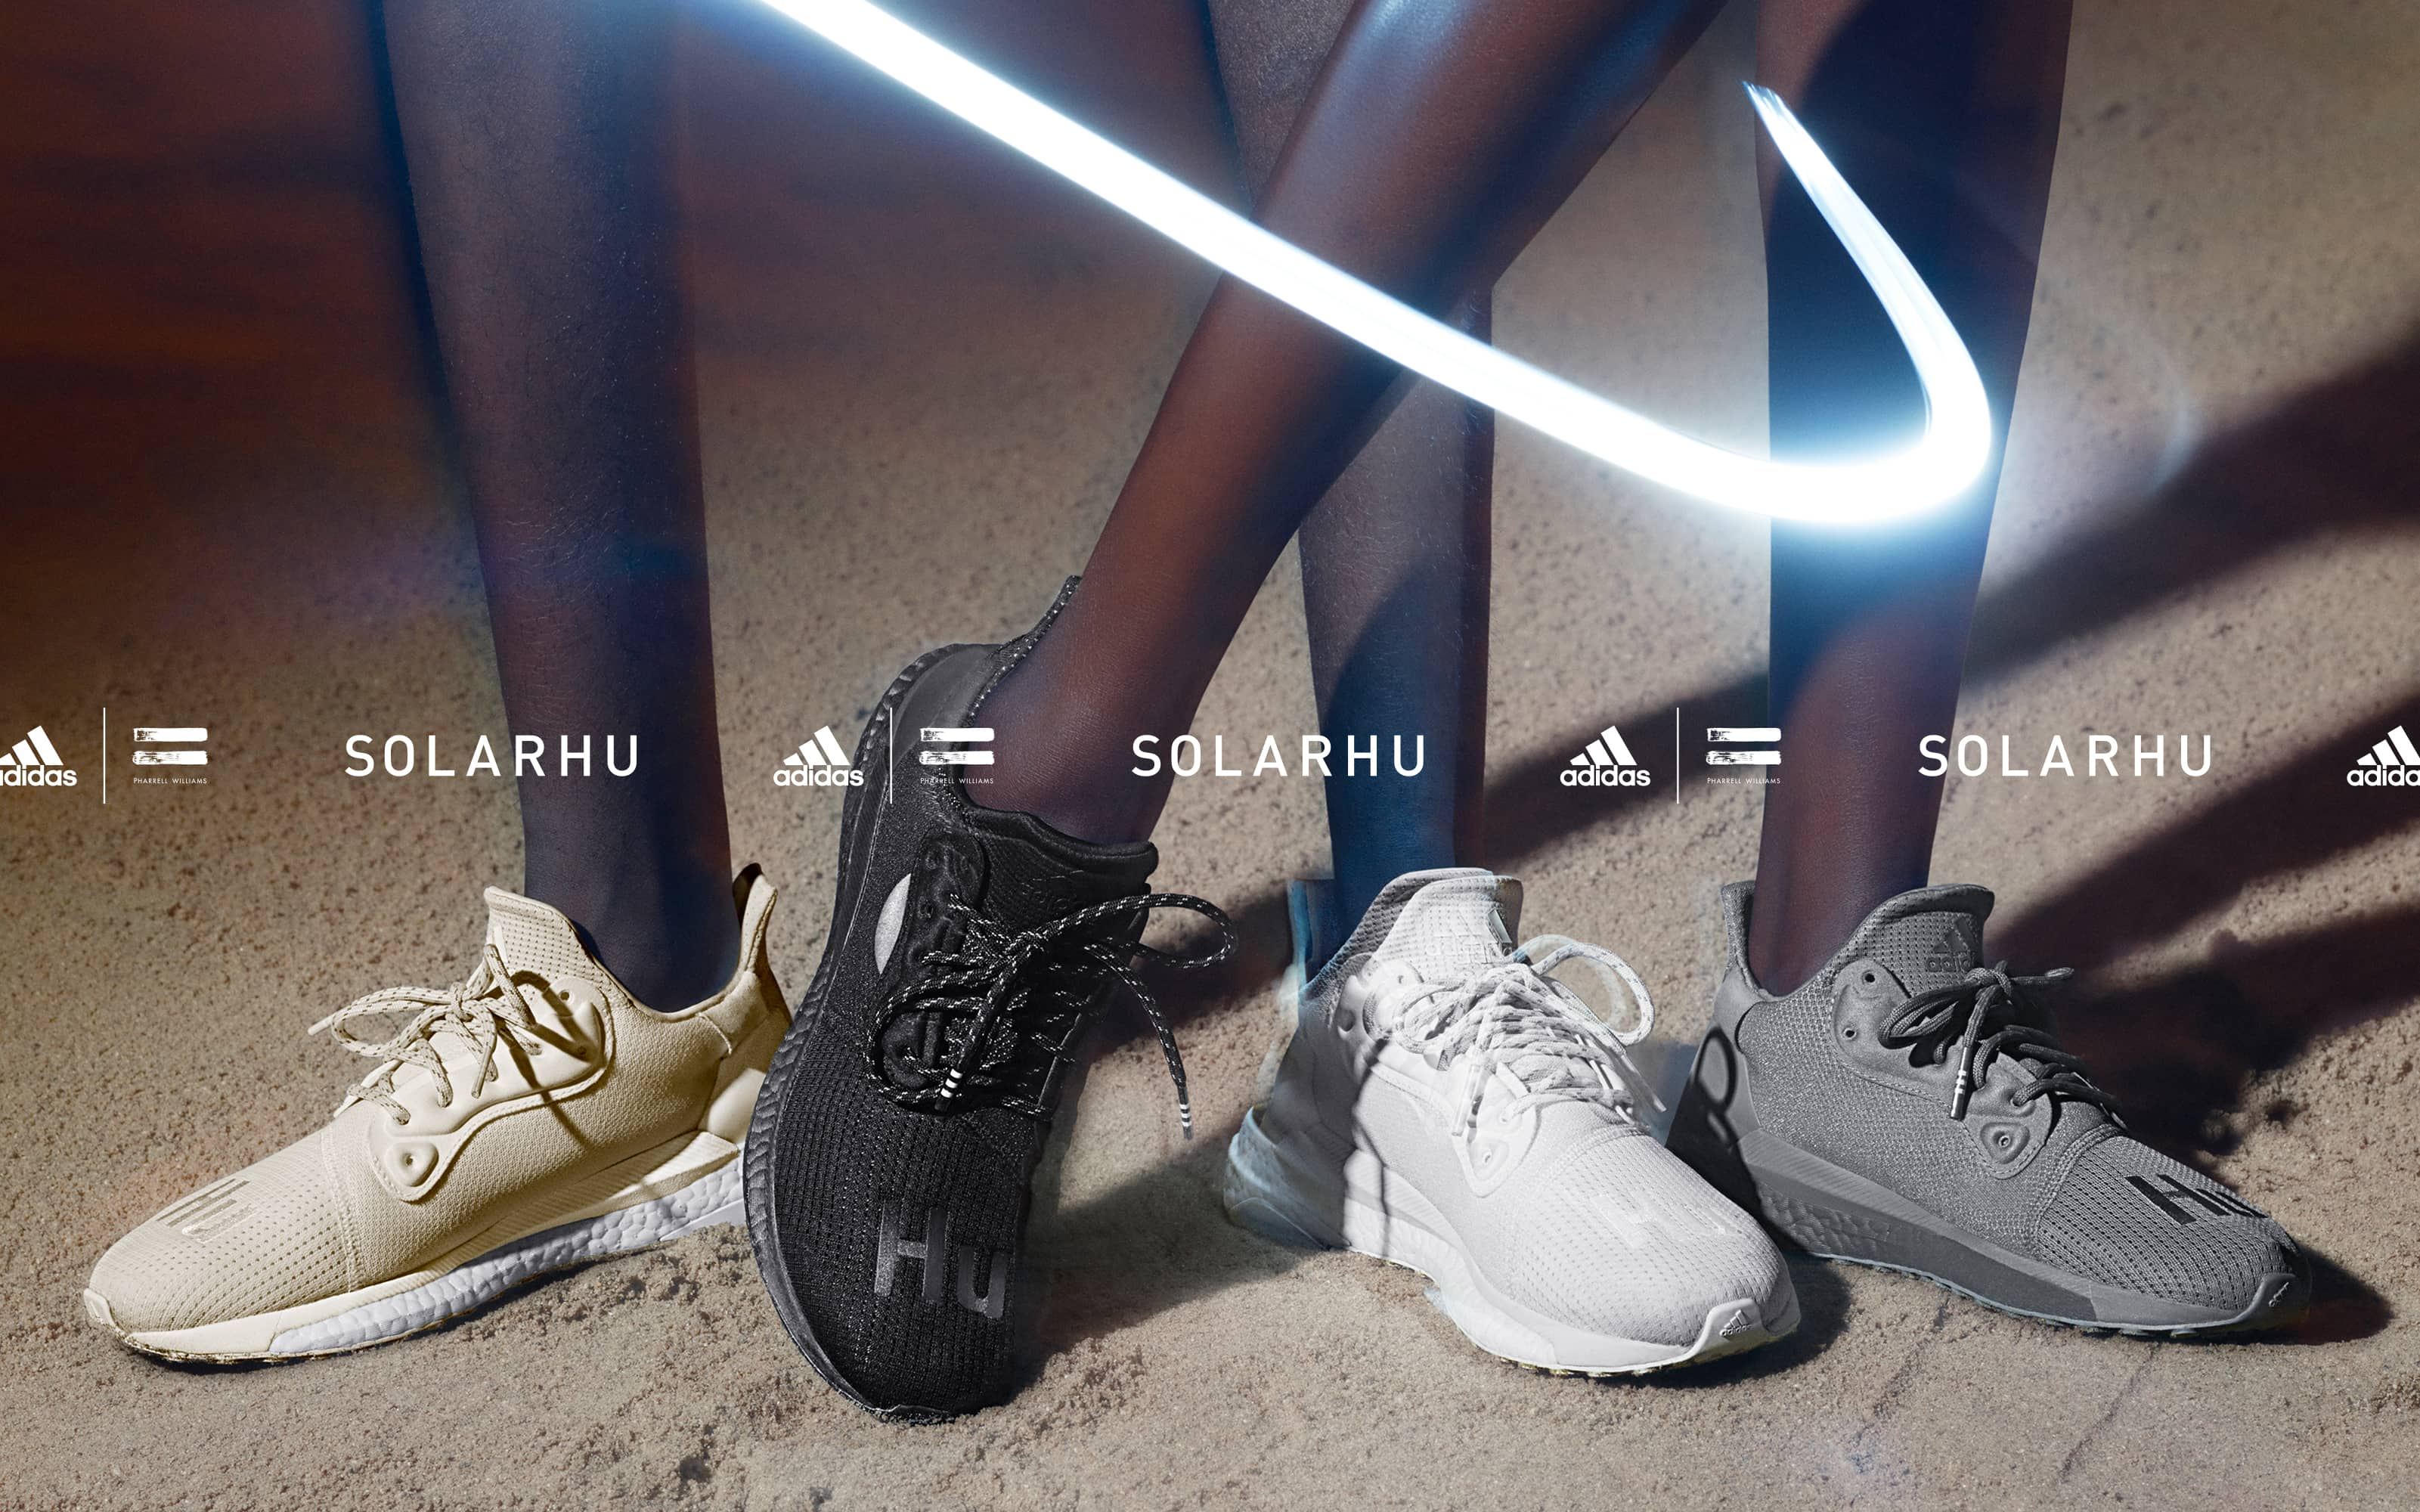 Adidas and Pharrell Williams launch the new SolarHu Greyscale sneaker collection